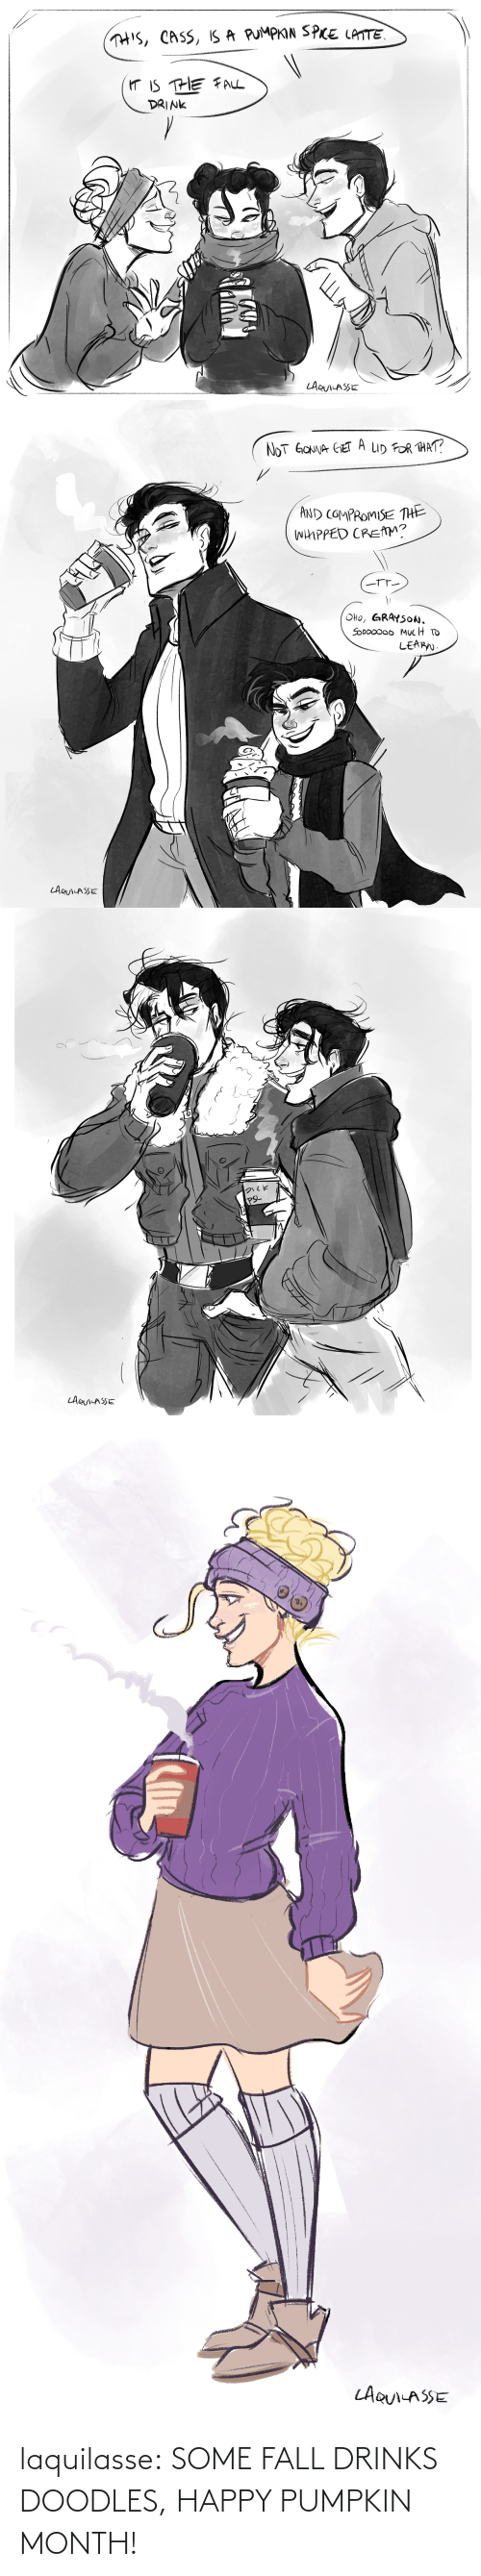 Fall, Target, and Tumblr: laquilasse:  SOME FALL DRINKS DOODLES, HAPPY PUMPKIN MONTH!